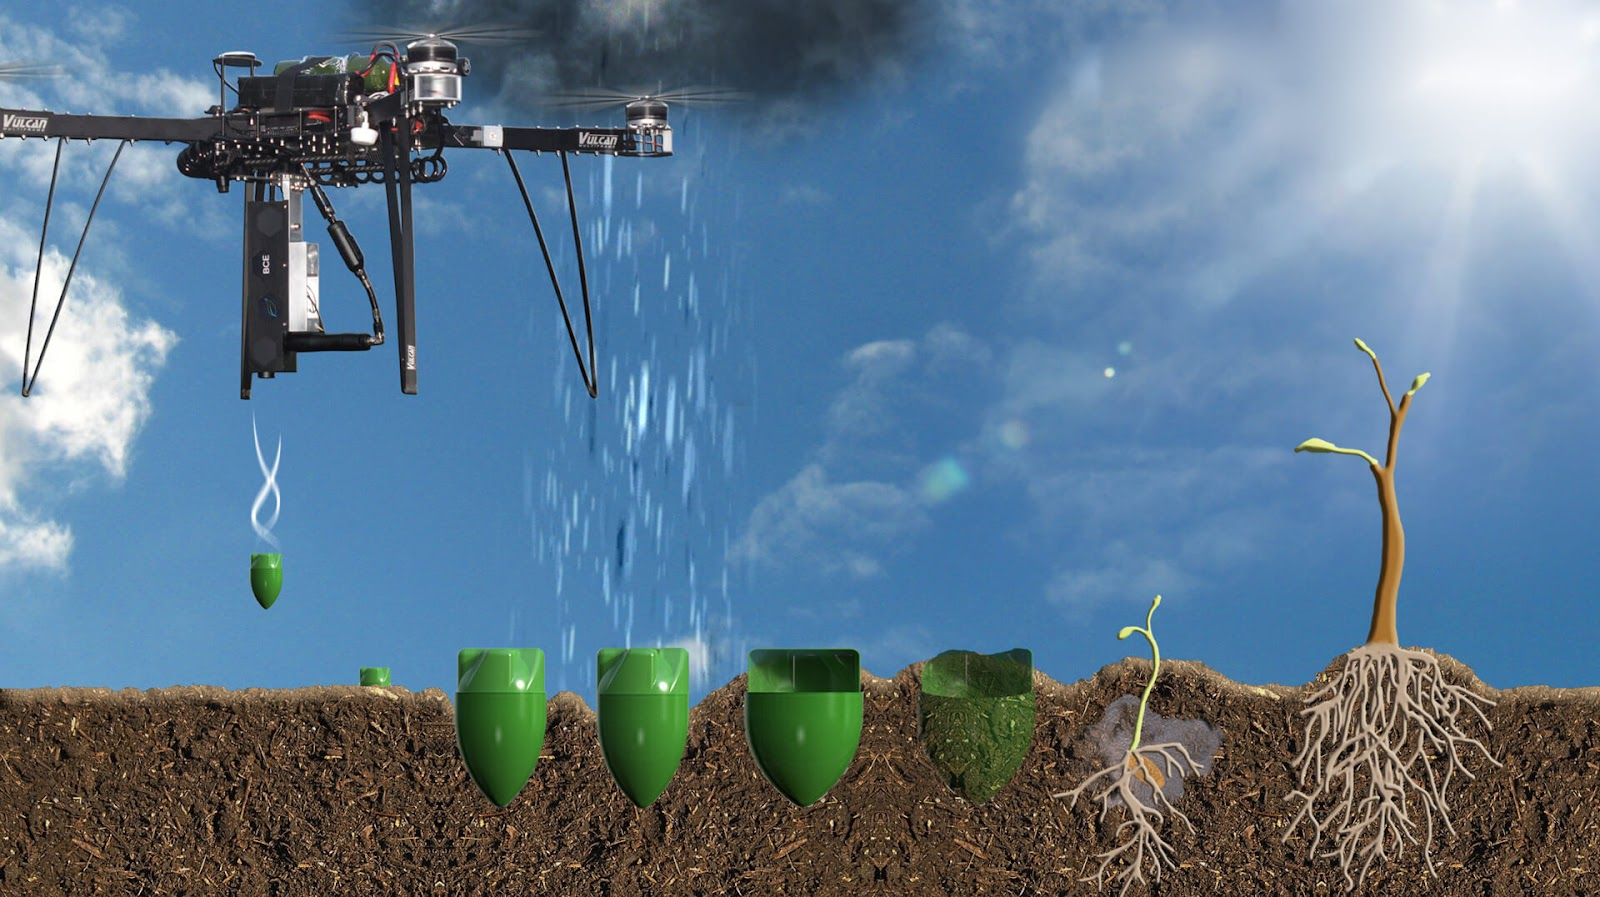 Tree planting drone for climate change